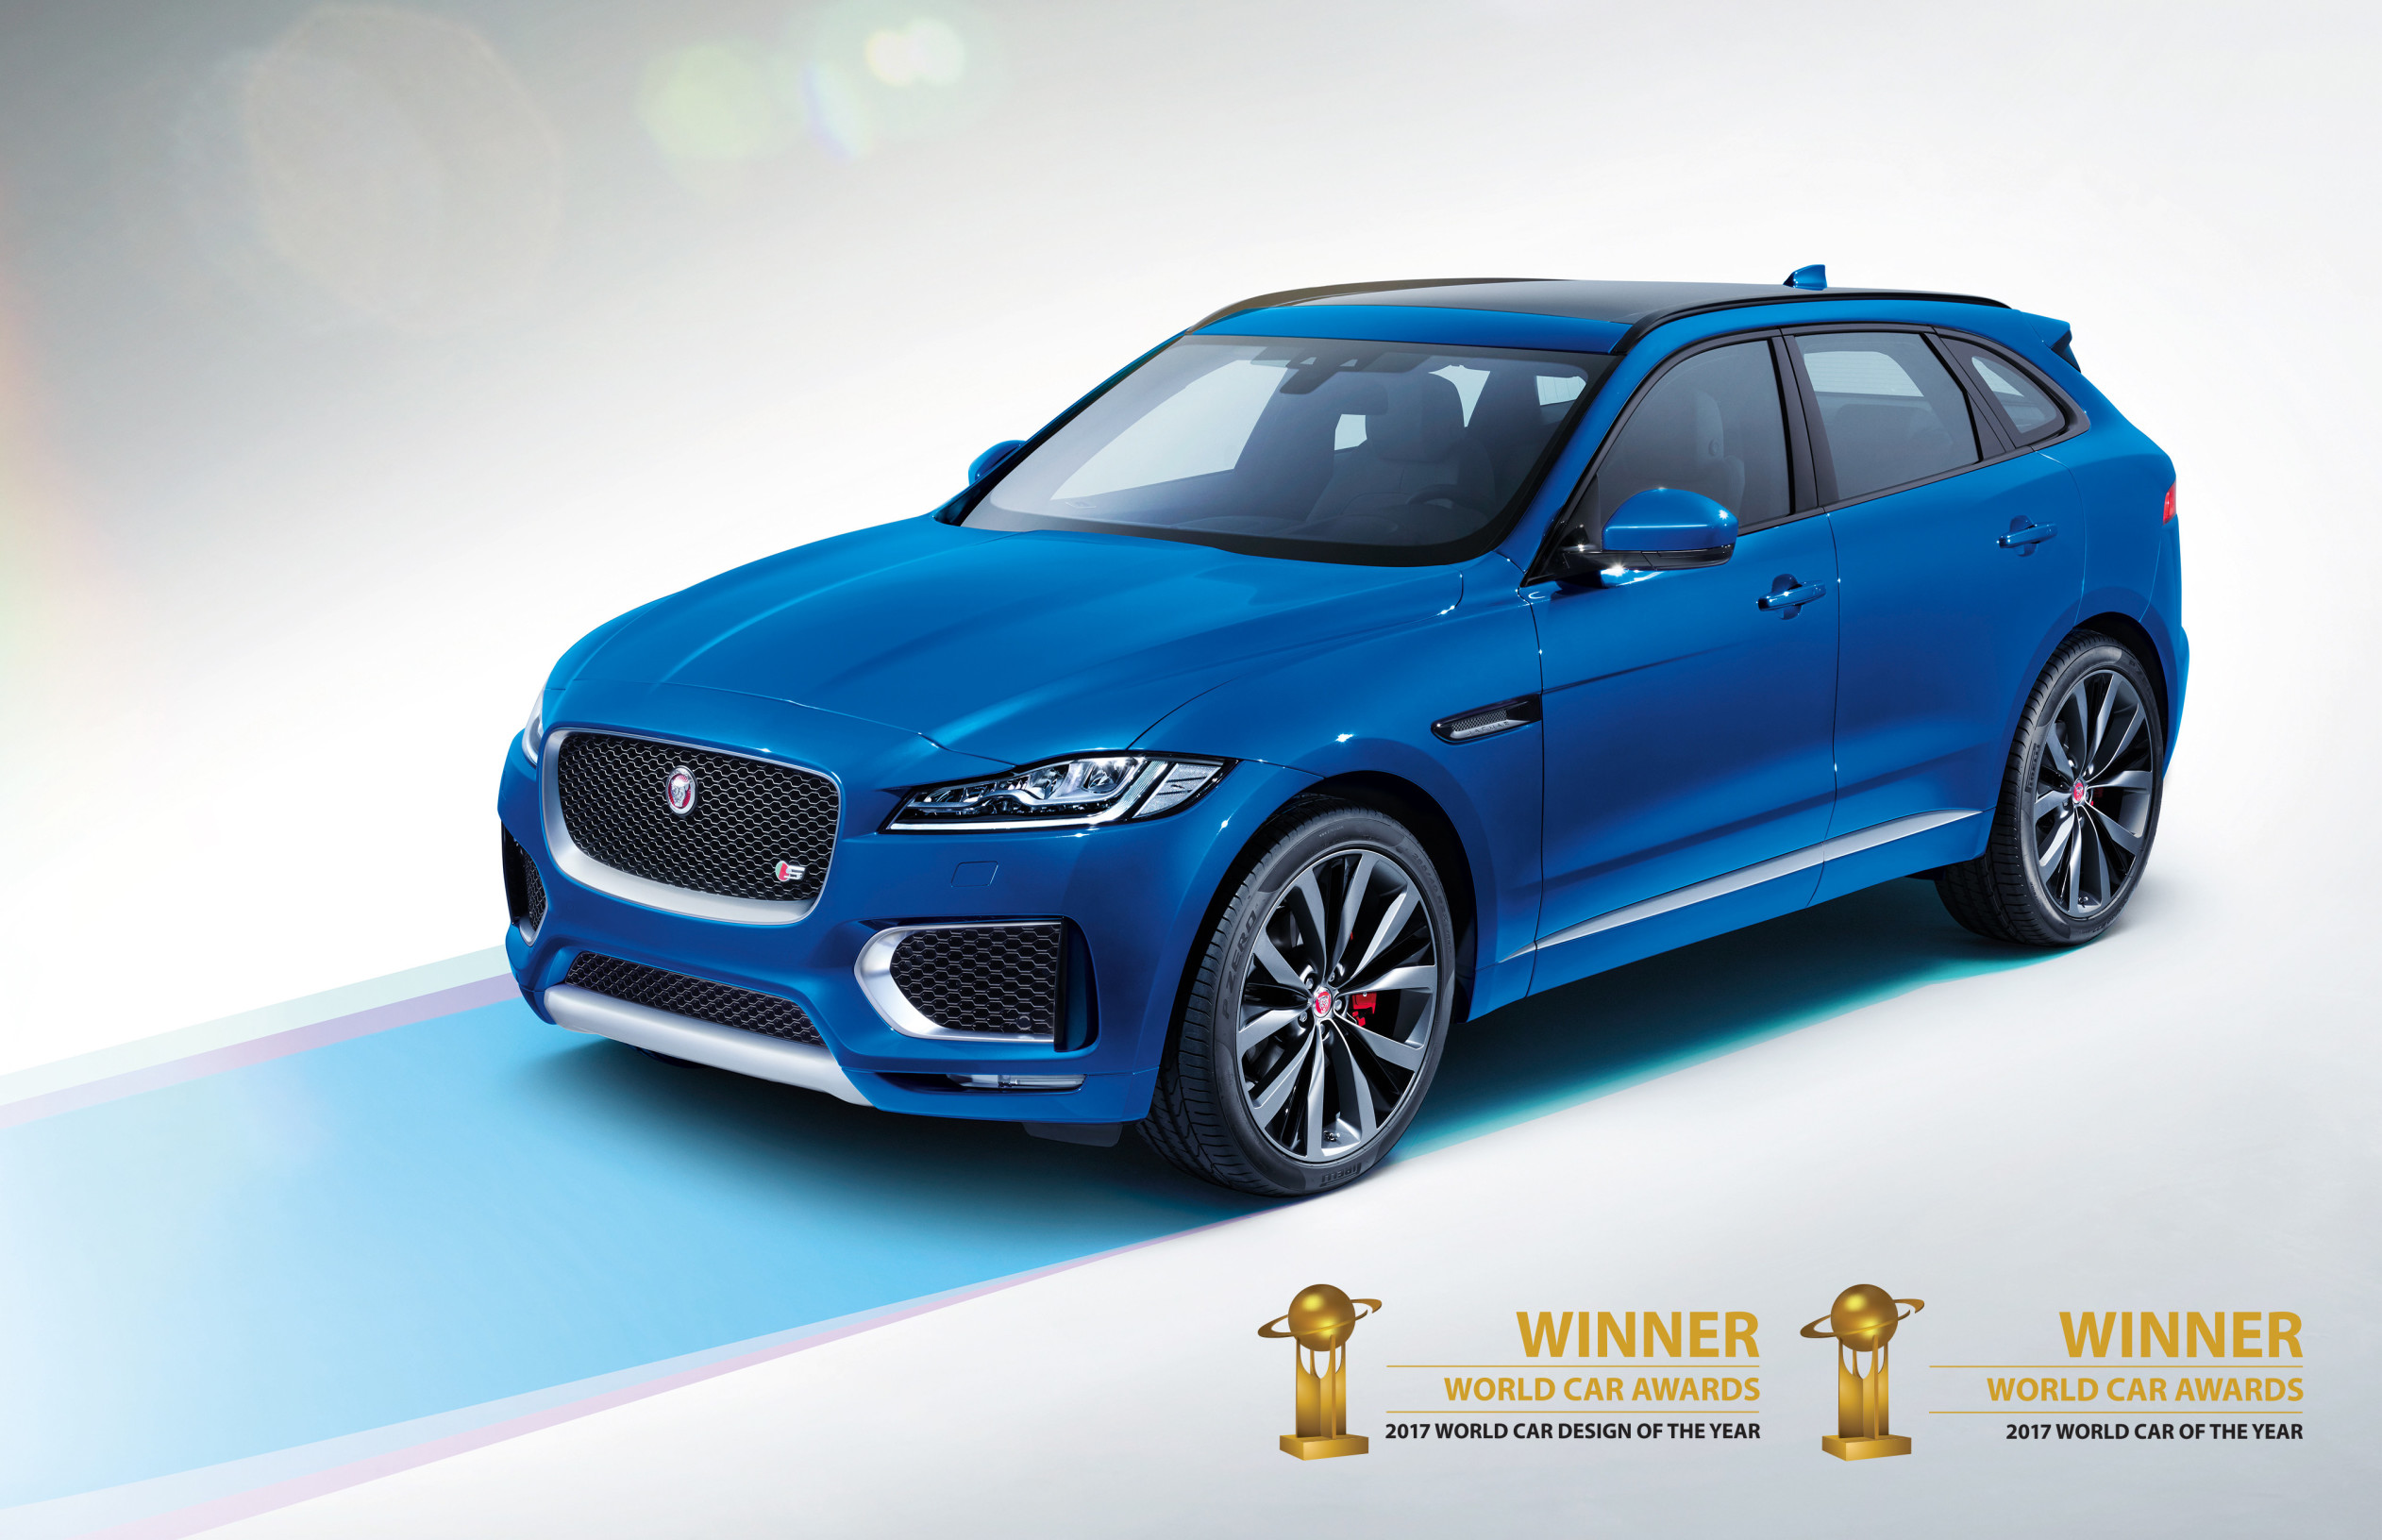 Jaguar F PACE: Officially The Best Car In The World